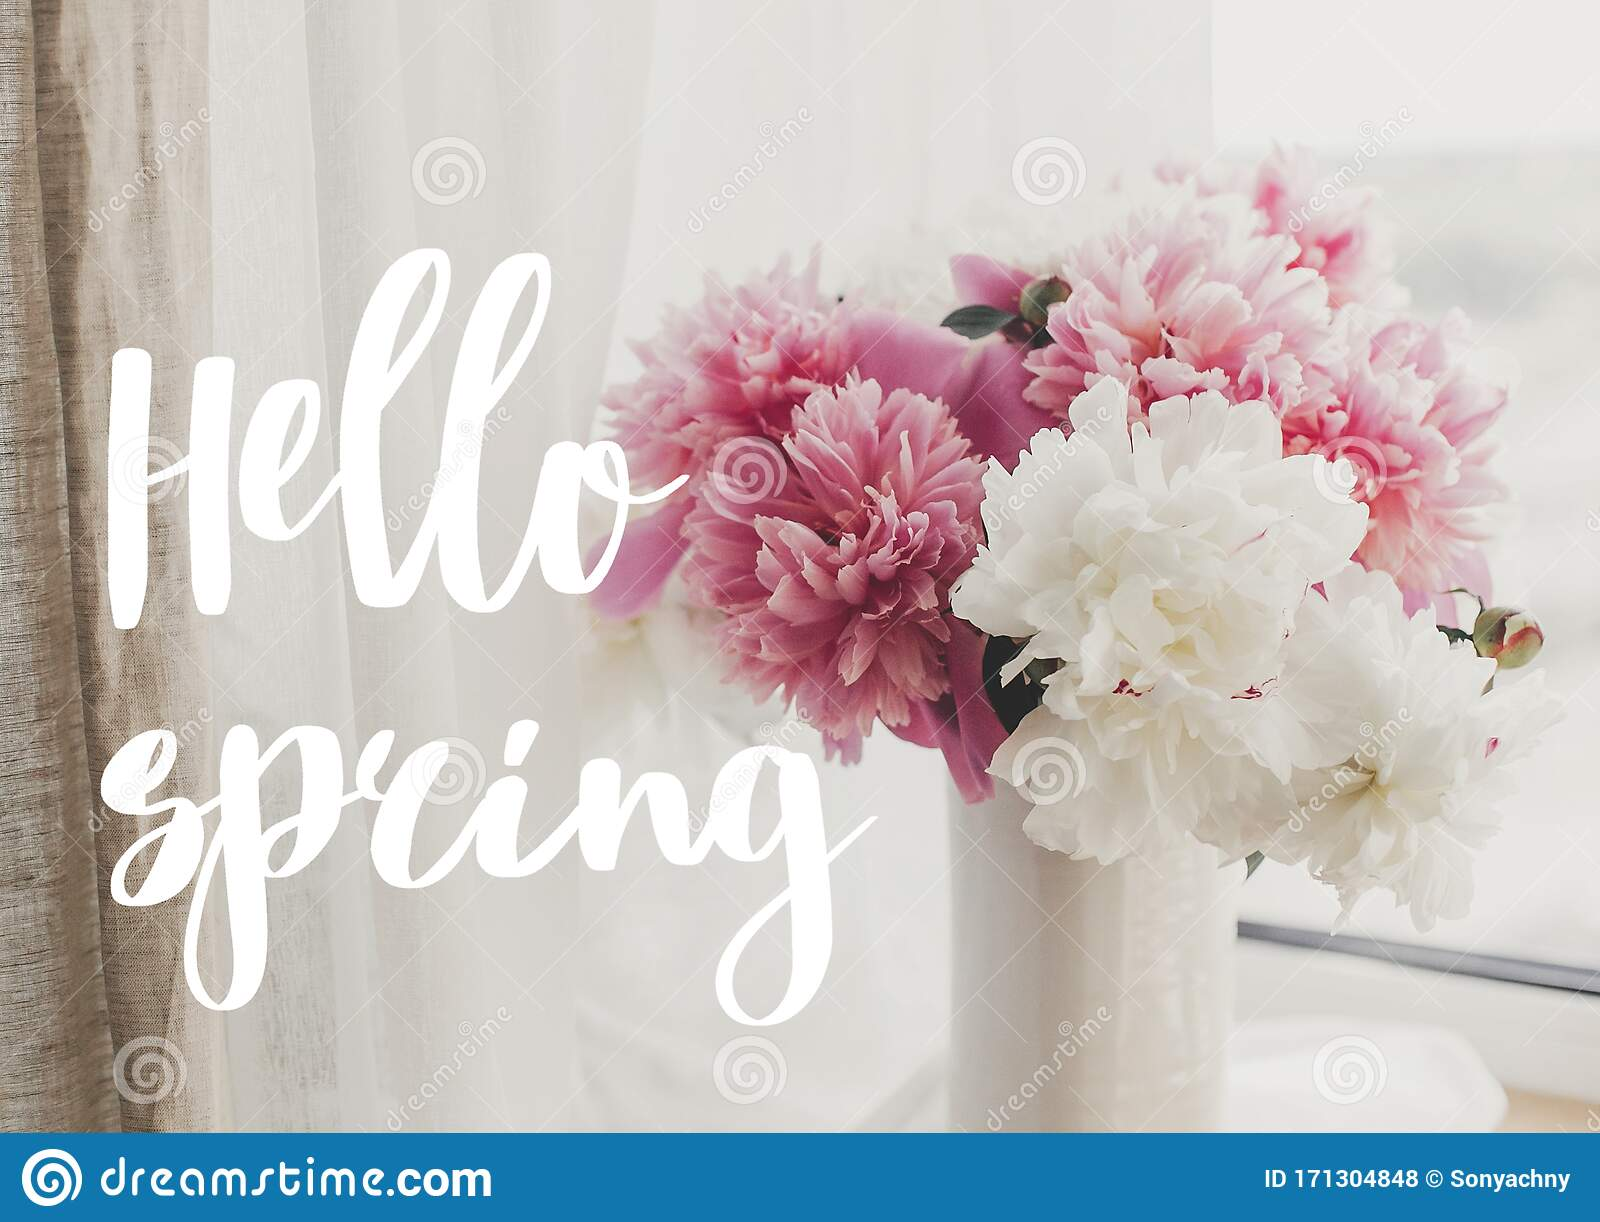 Hello Spring Text Handwritten On Lovely Peony Bouquet In Sunny Light On Rustic Window Stylish Pink And White Peonies In Vase On Stock Photo Image Of Postcard Greeting 171304848